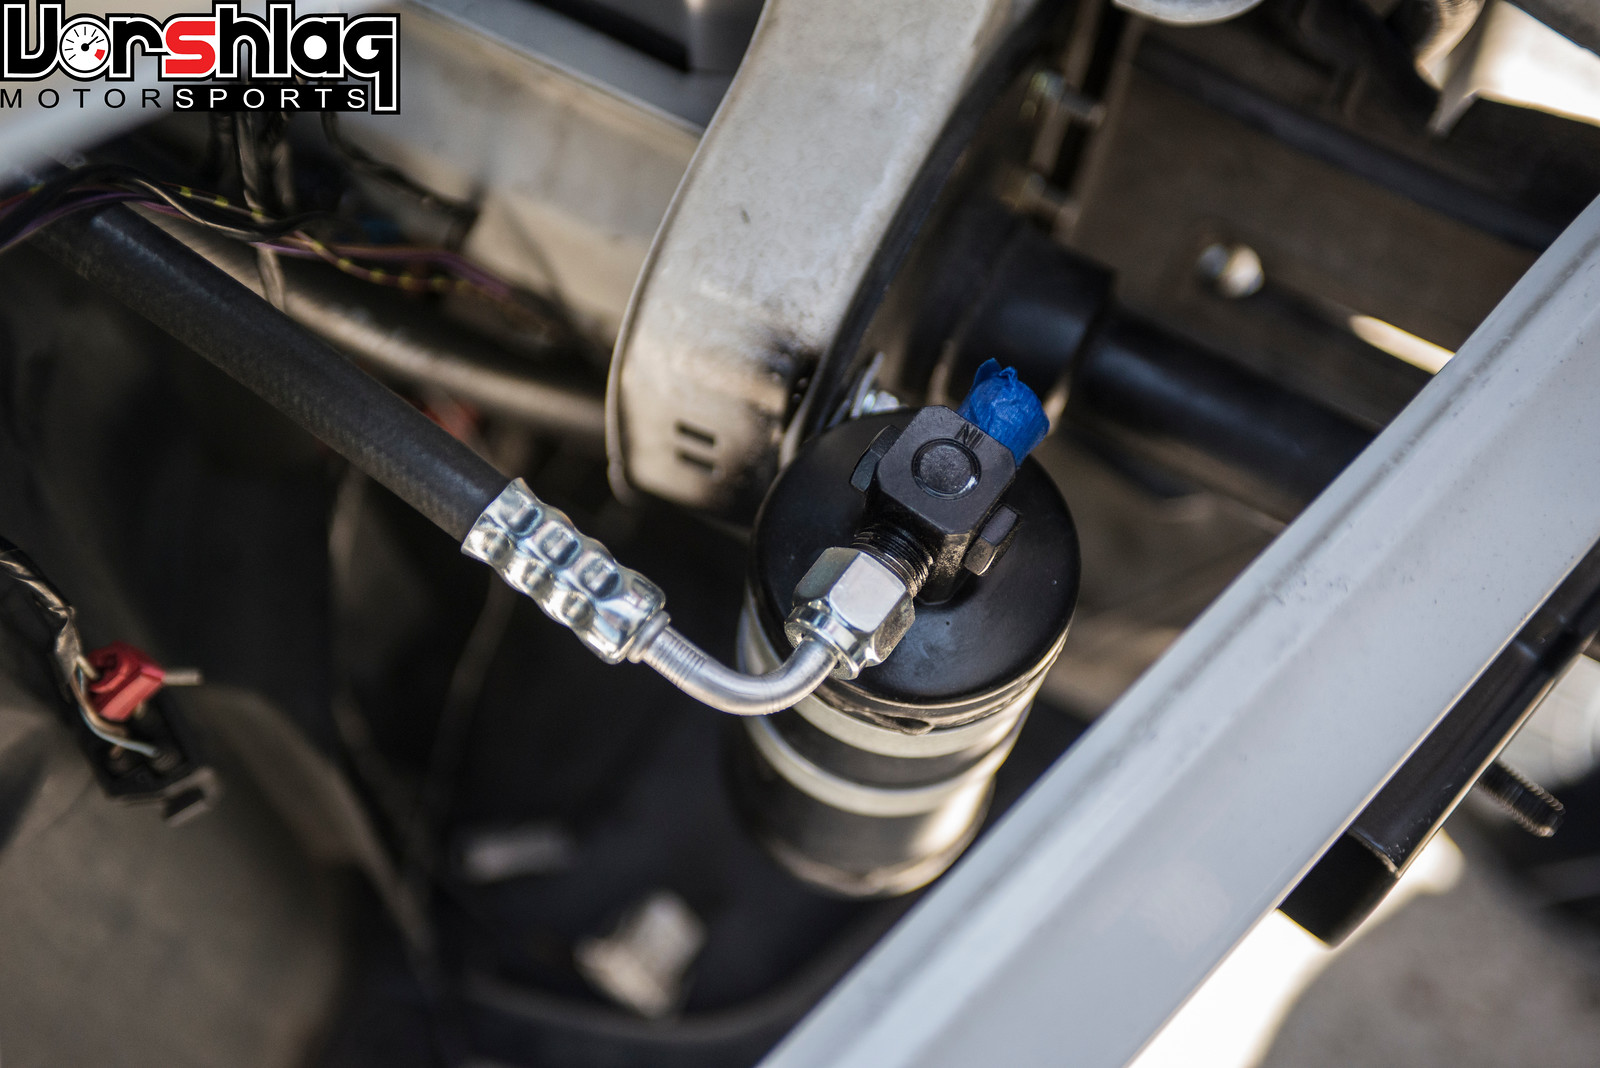 _DSC7747 X3 vorshlag announcement thread for all ls1 swap development e30 ls1 wiring harness at nearapp.co